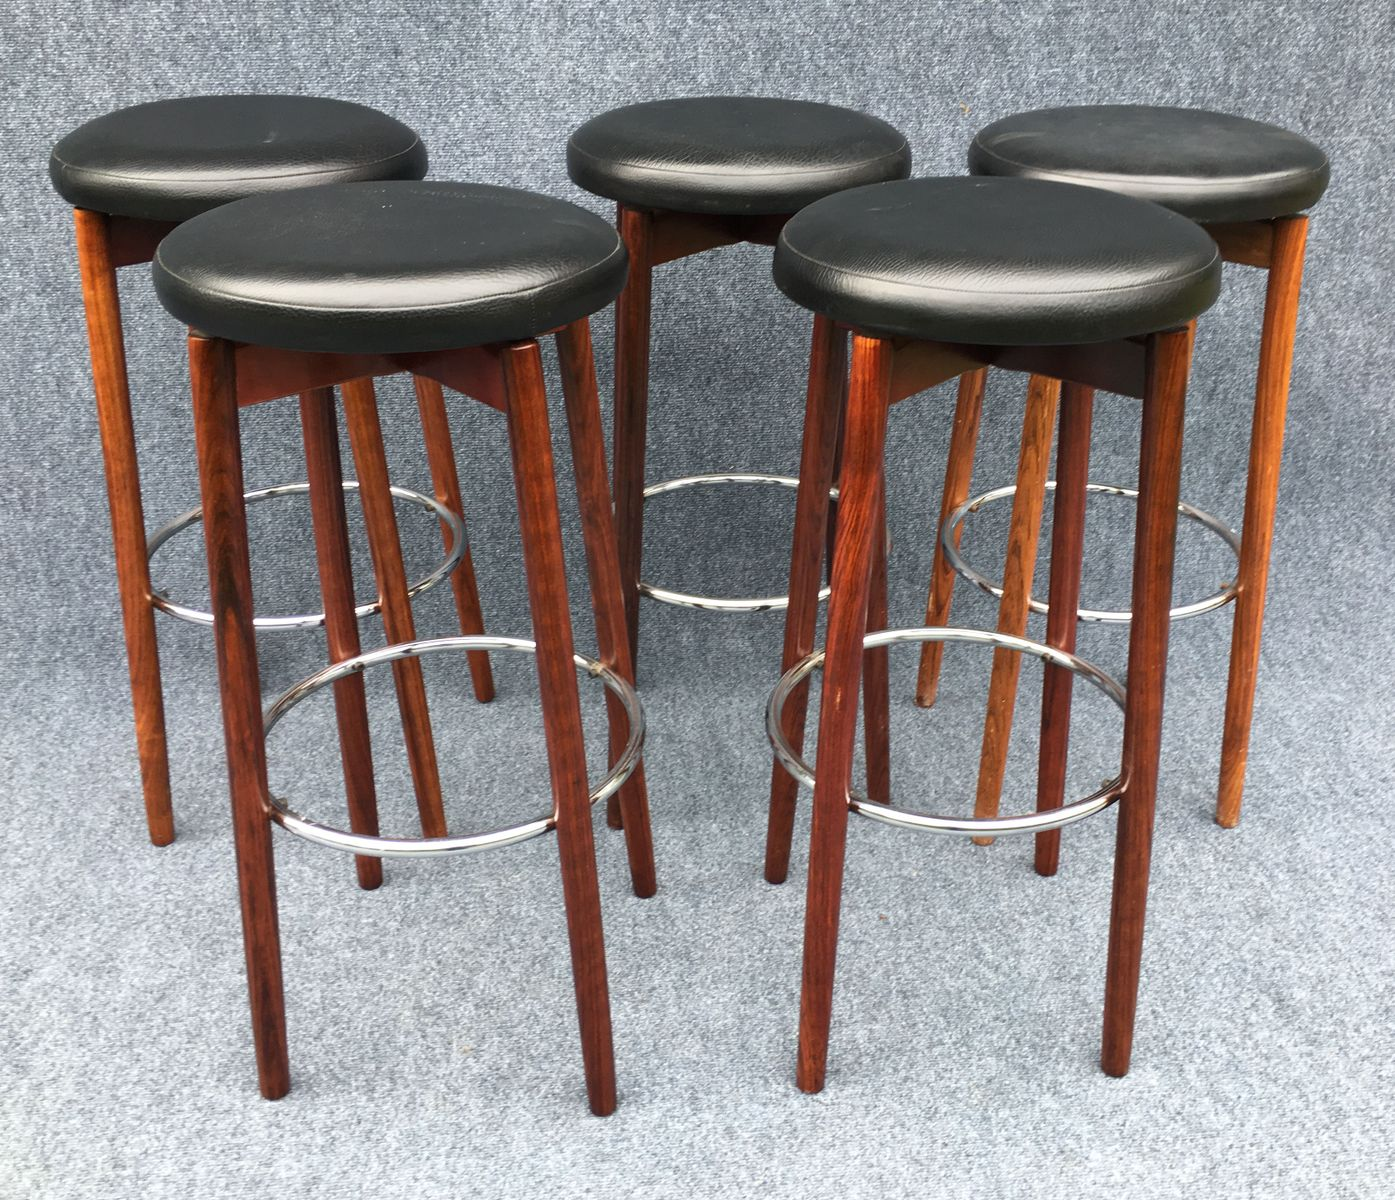 Danish Rosewood And Chrome Bar Stools 1970s Set Of 5 For